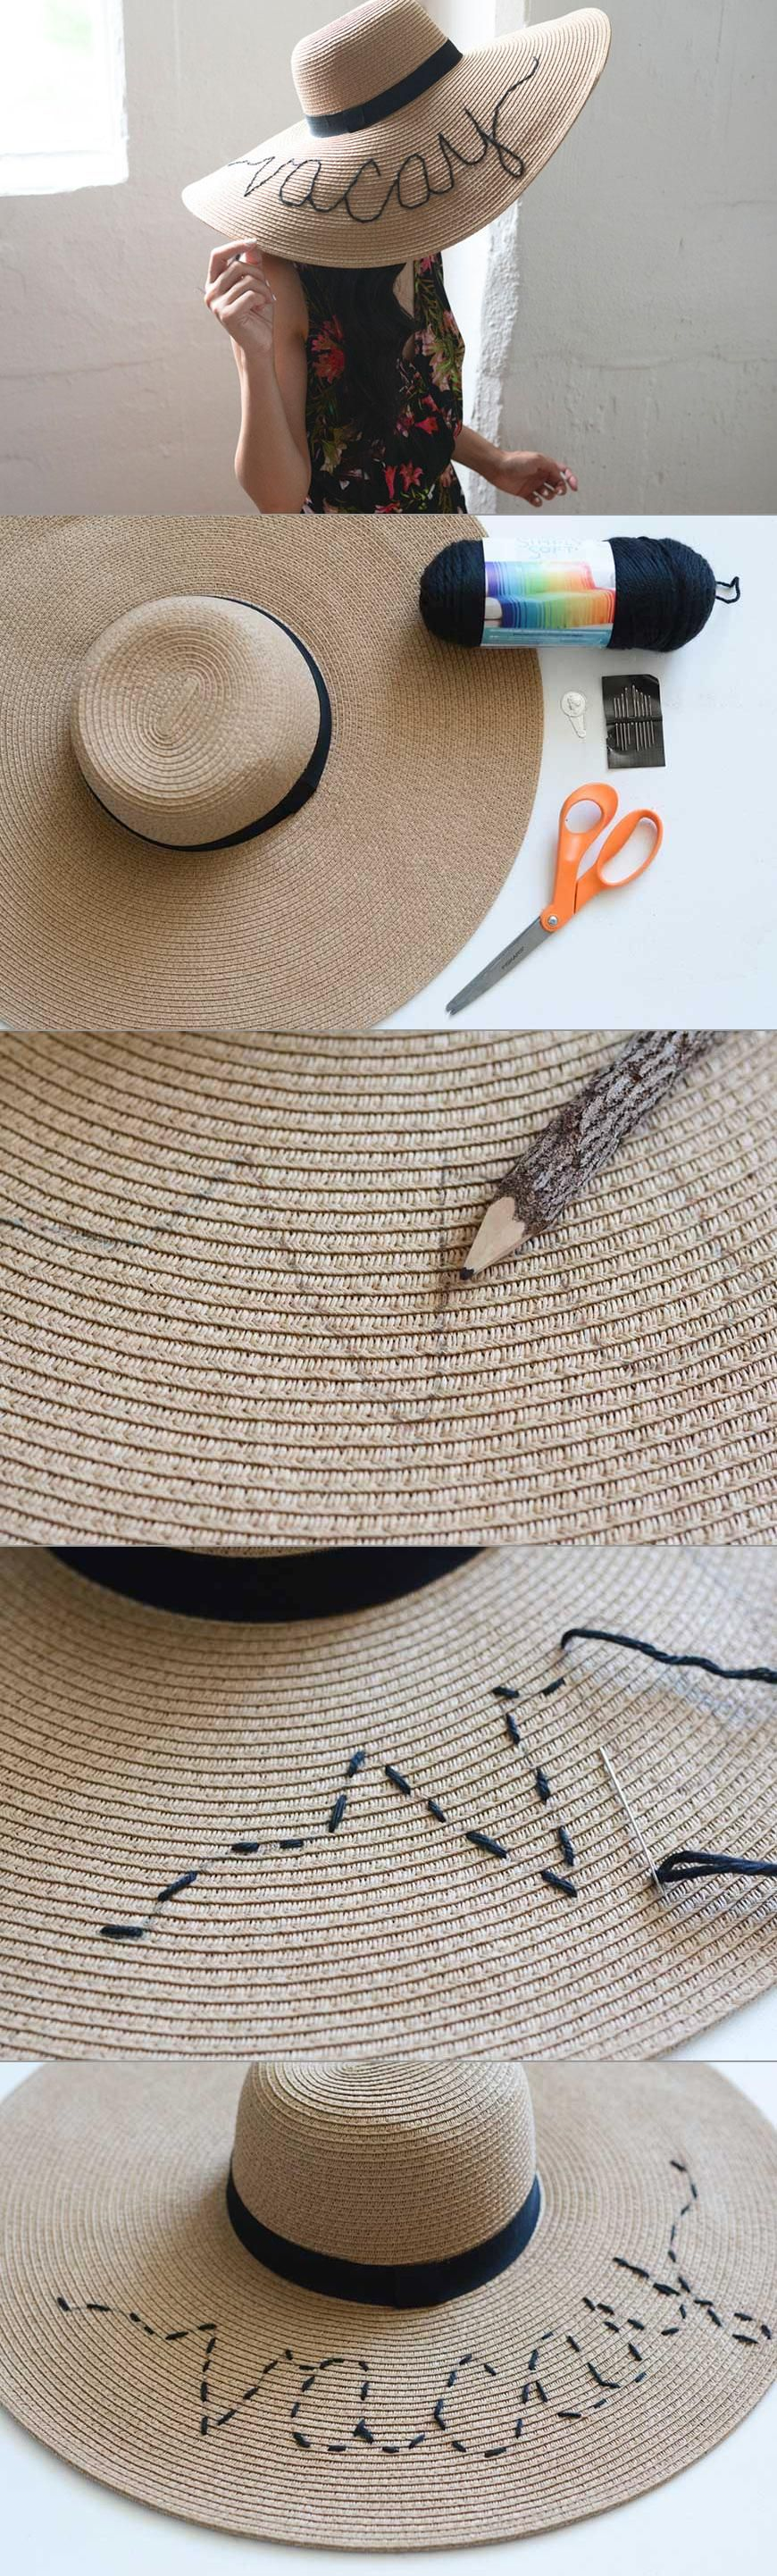 ed3f57c6e71 If you take a peek into my closet, you will immediately see my collection  of oversized straw hats. They are my favorite accessory for the summer and  ...